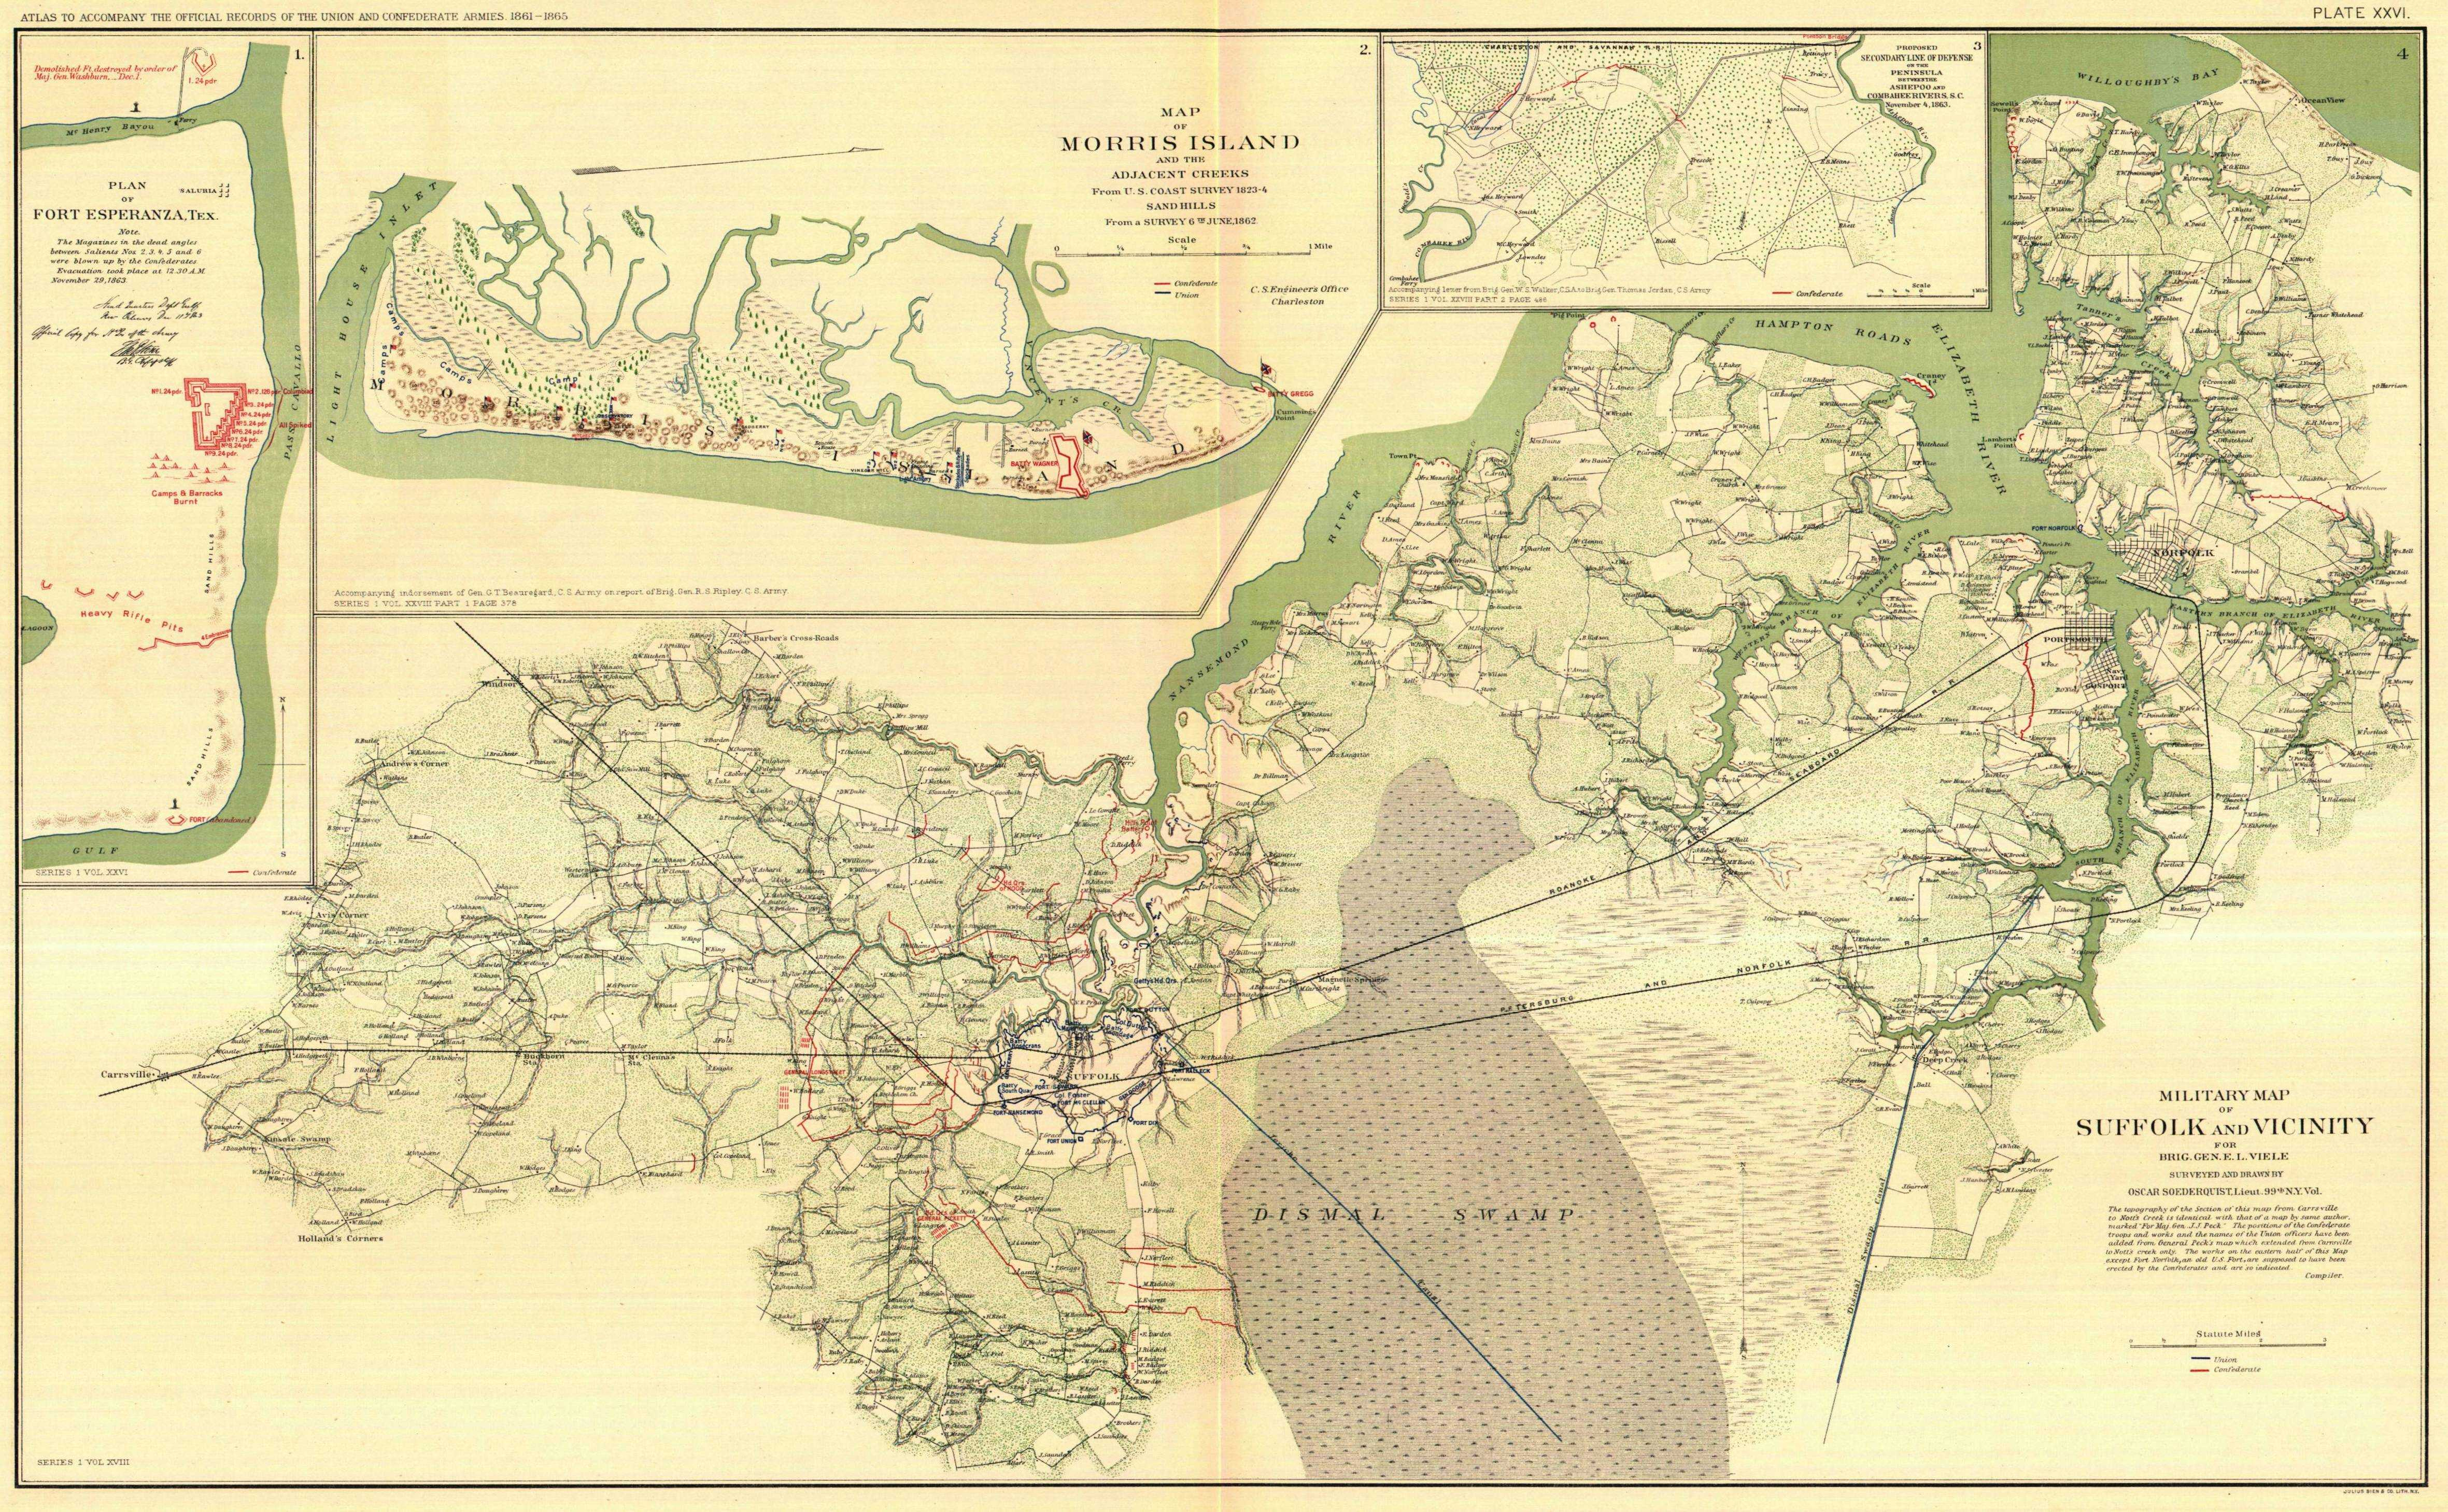 Virginia Maps. Virginia Digital Map Library. Table of Contents ...